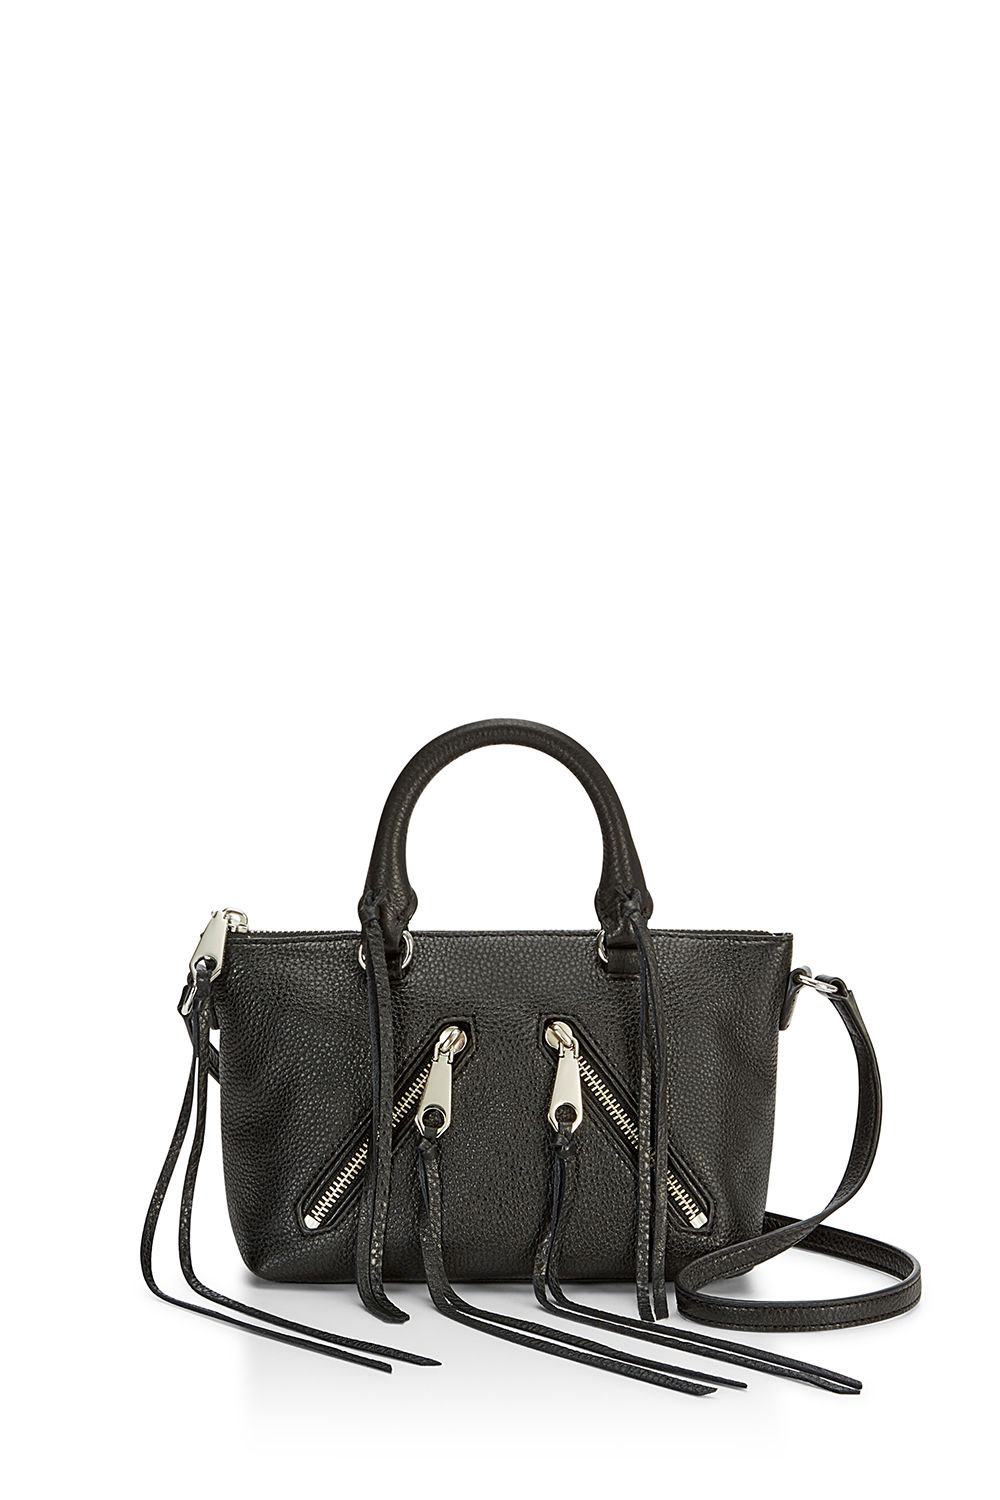 99acb0aeb9 Most Loved Handbags On Sale, Soft Leather, Rebecca Minkoff, Wearing Black,  Shoulder